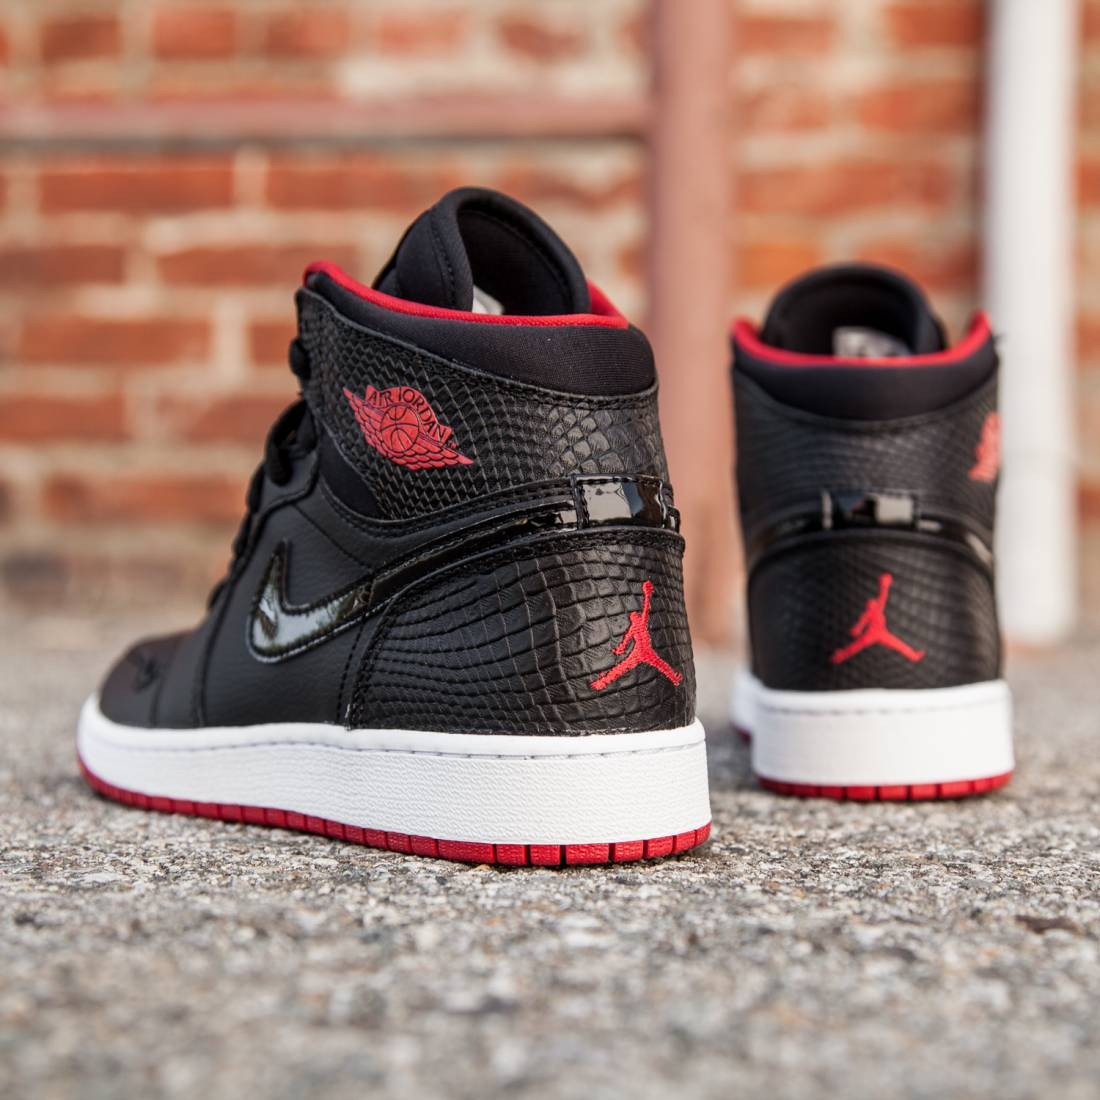 5d8191e792 Air Jordan 1 Retro High (GS) Big Kids (black / white / gym red)